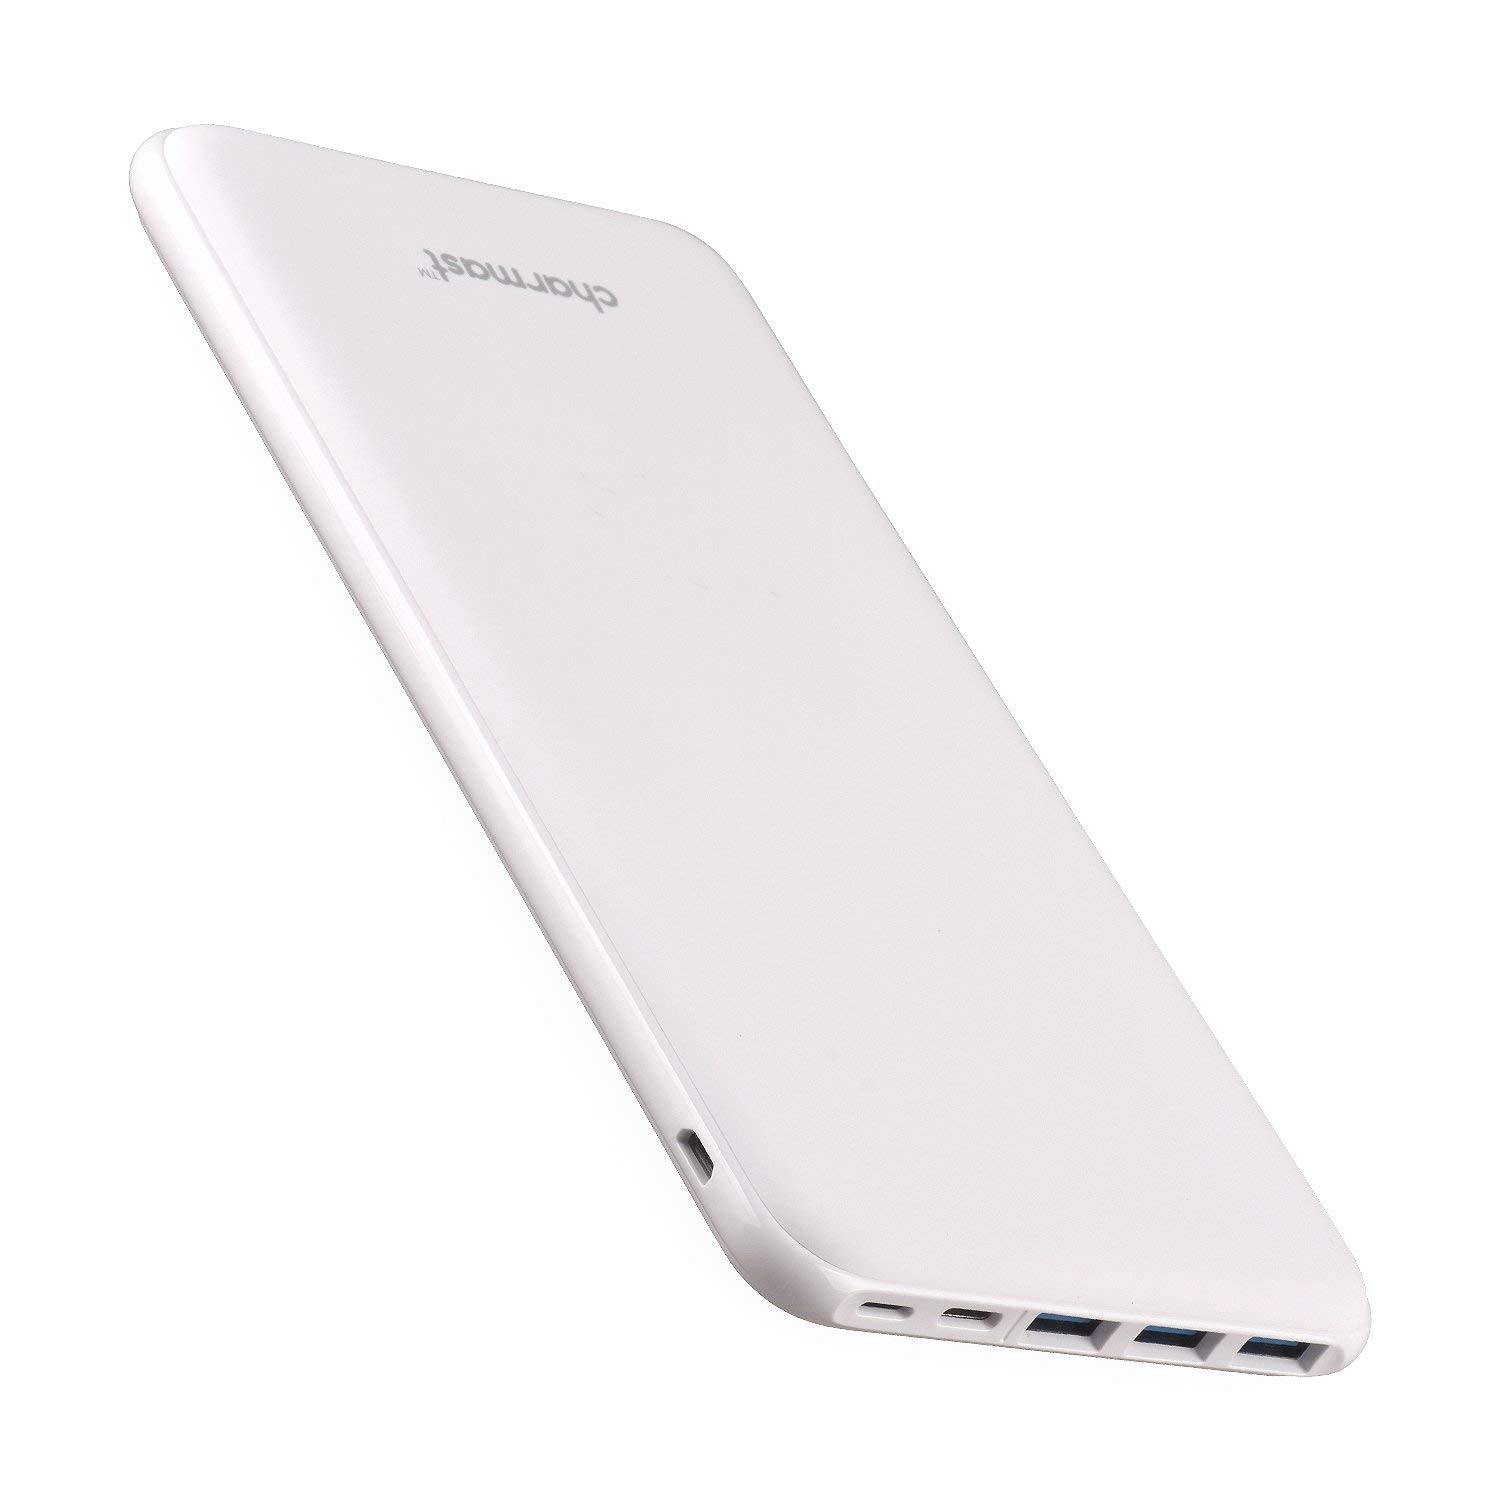 Power Bank Portable Charger 26800mAh High Capacity 5V 3A Fast Charging USB C External Battery Pack with 4 Outputs, Ultra Slim Compact Backup Battery Compatible with MacBook iPhone 11/Pro Samsung-White by Charmast